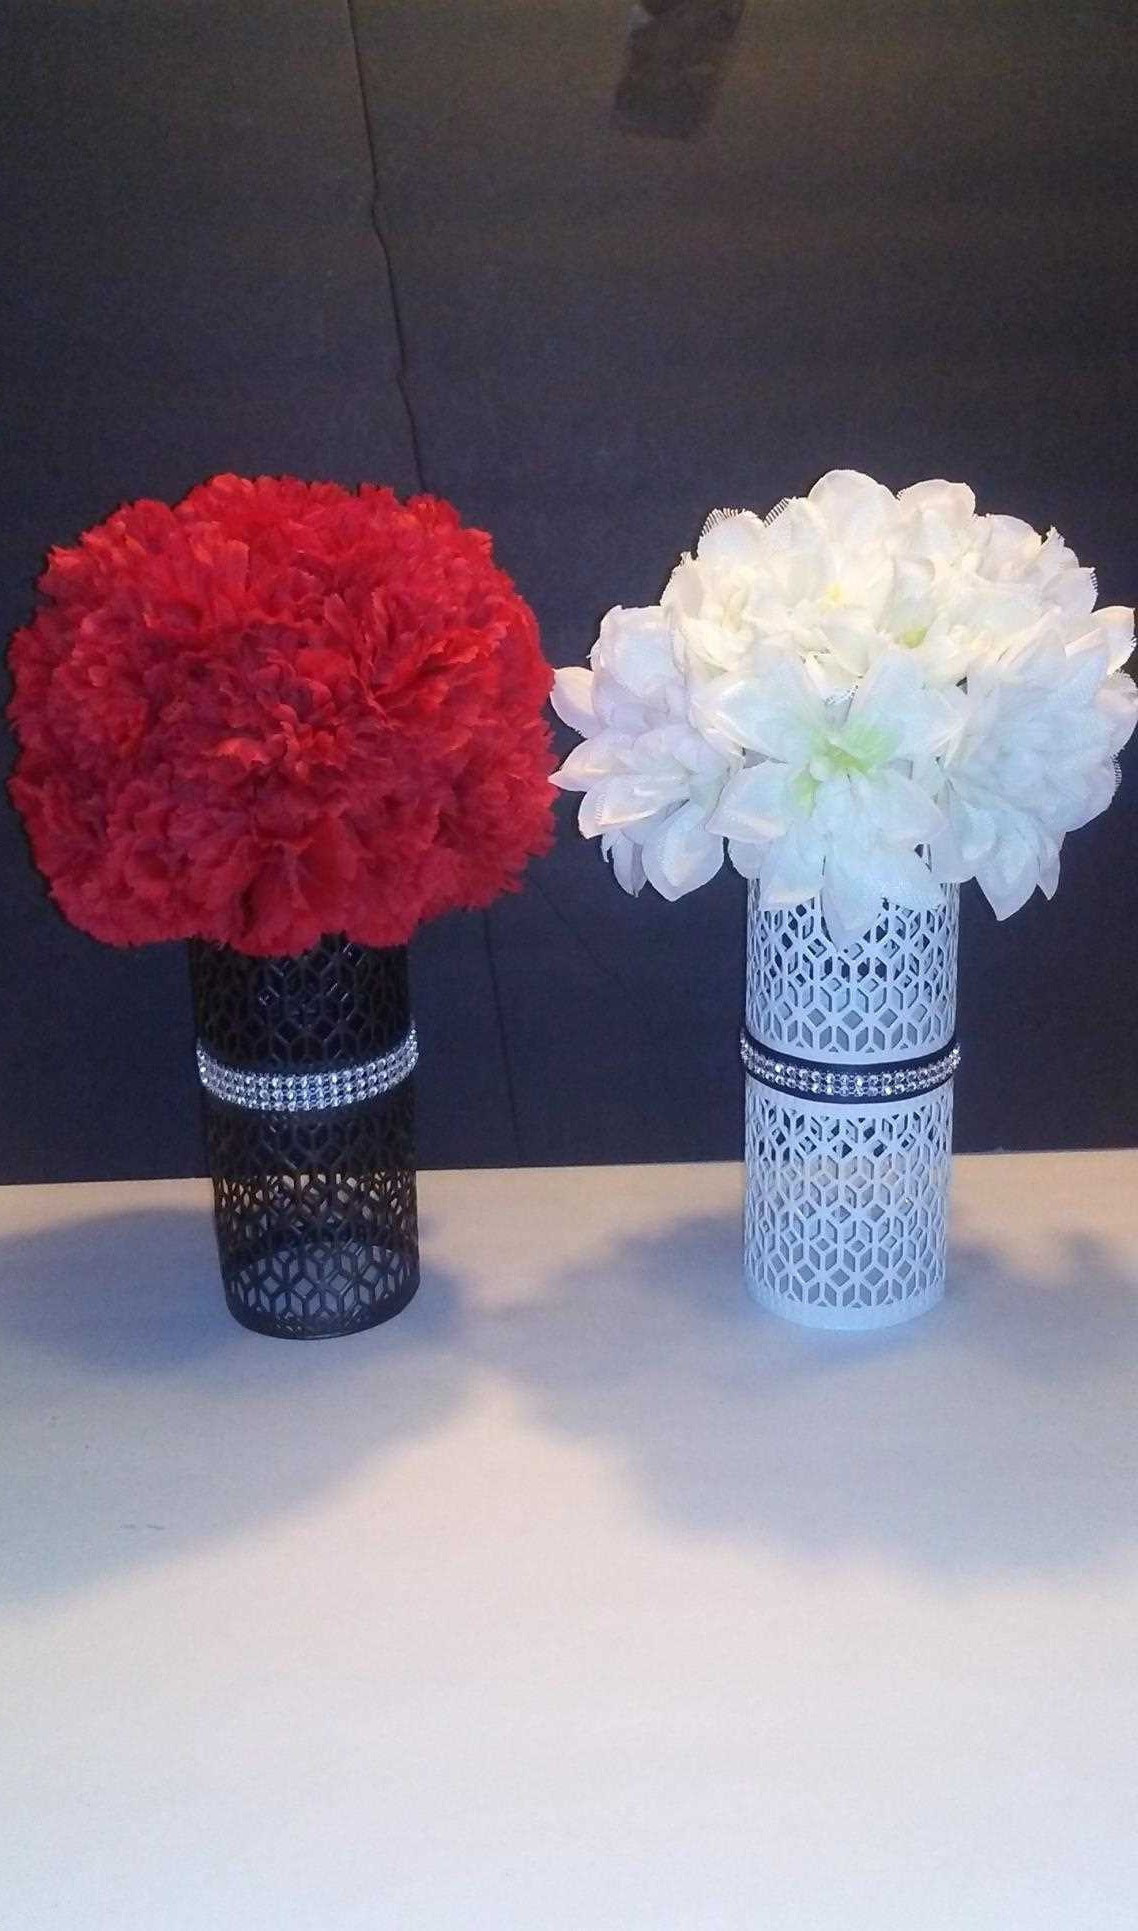 eiffel tower vases dollar tree of vases at dollar tree pics flowers centerpieces for wedding best in vases at dollar tree pics flowers centerpieces for wedding best dollar tree wedding of vases at